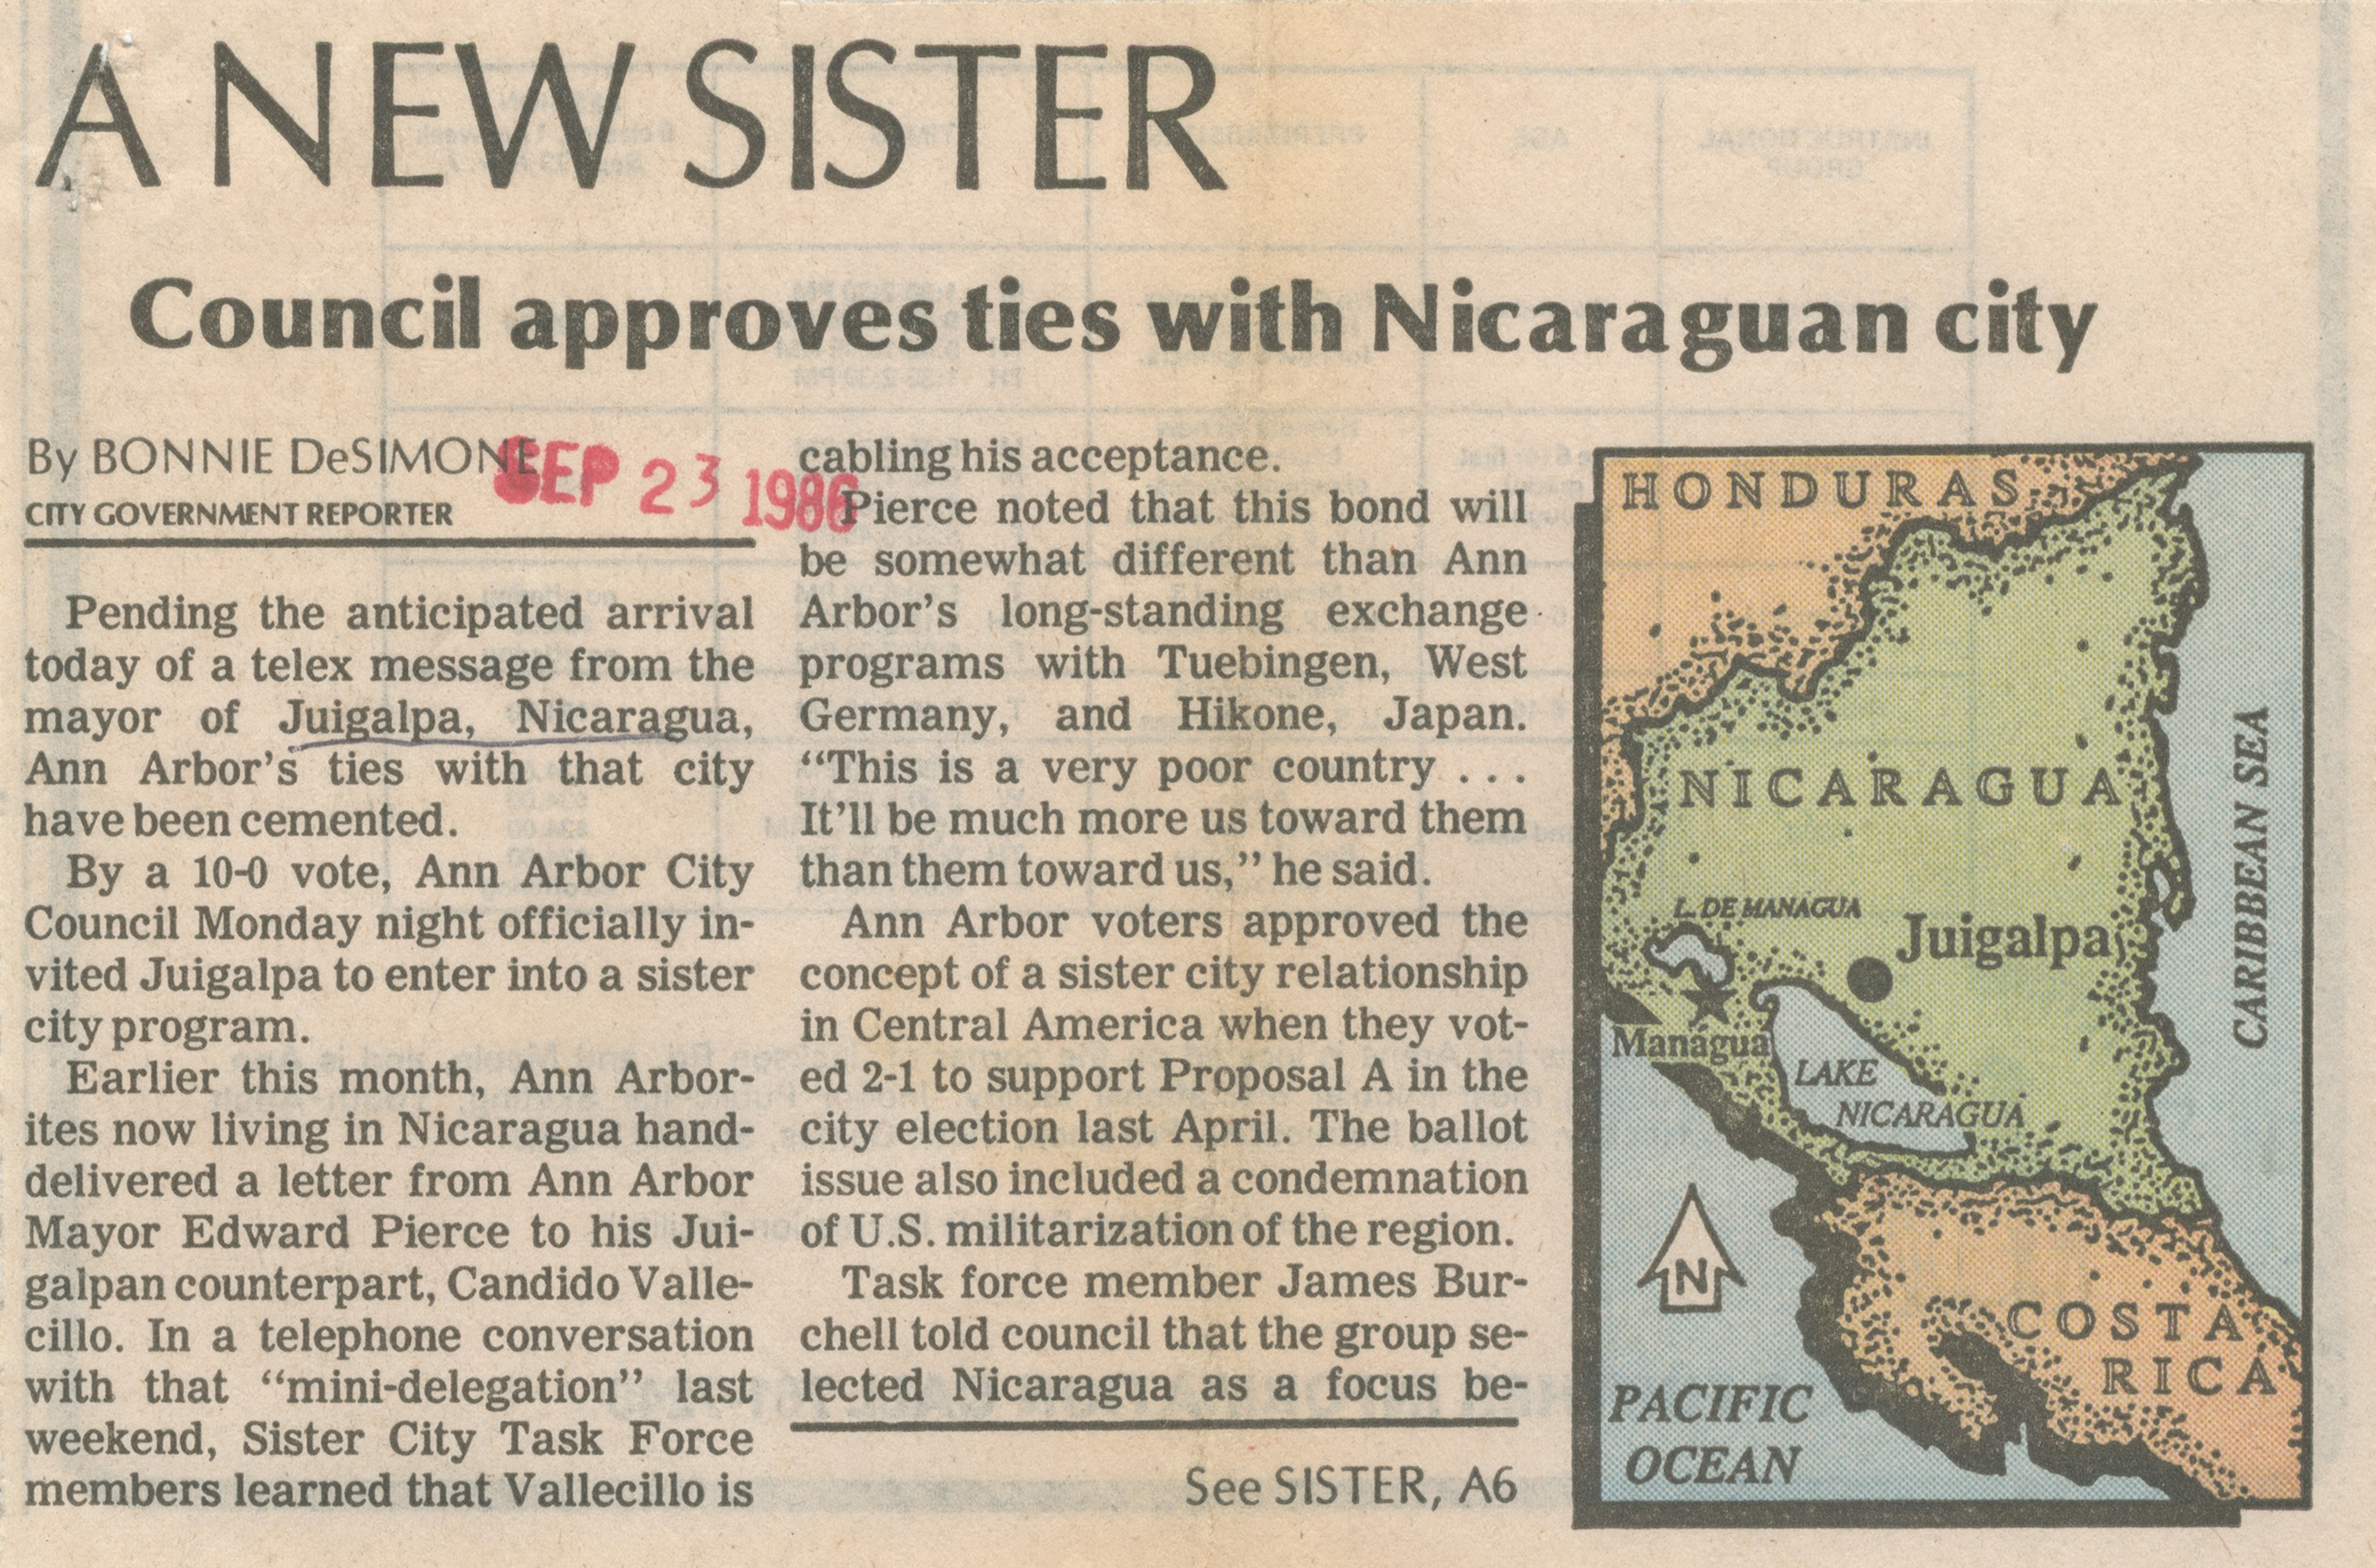 A New Sister - Council Approves Ties With Nicaraguan City image